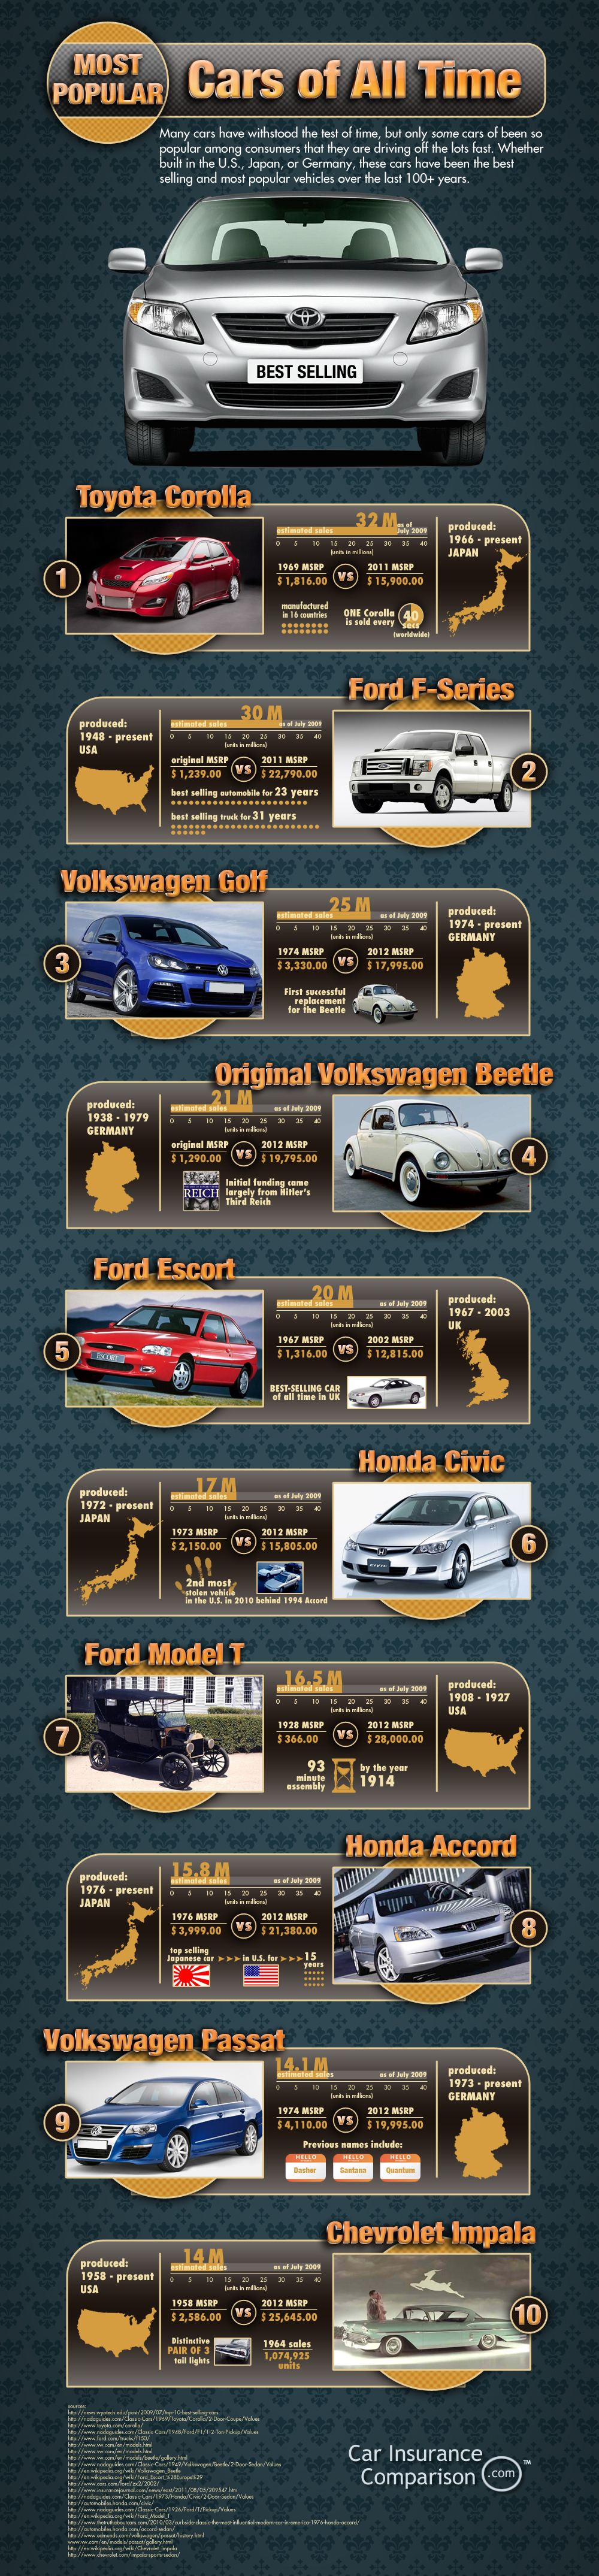 Most Popular Cars